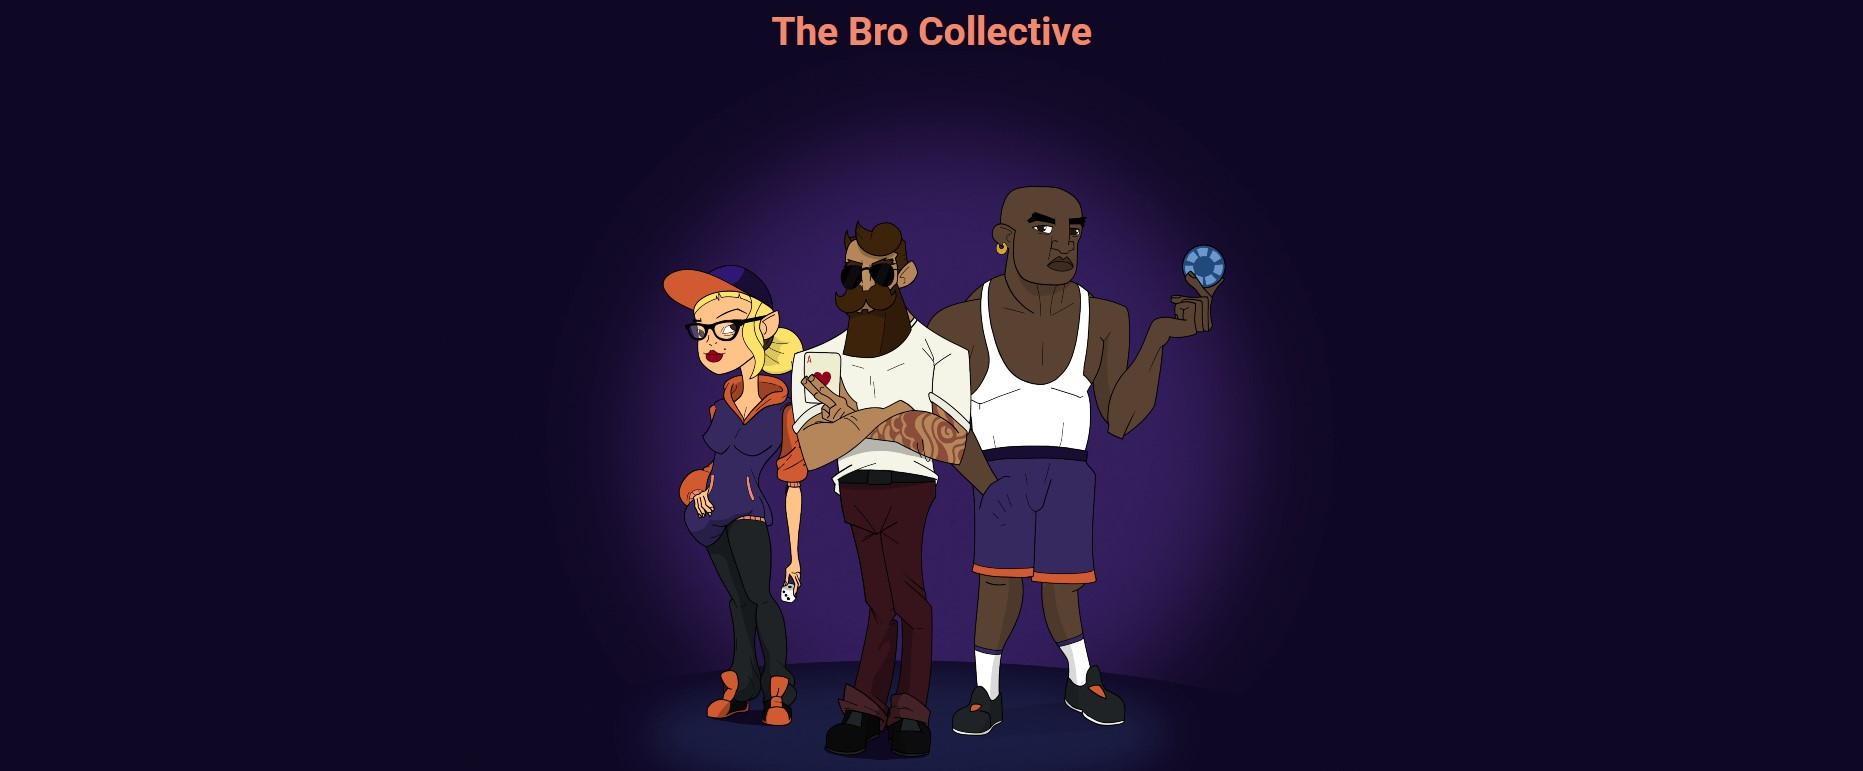 the bro collective